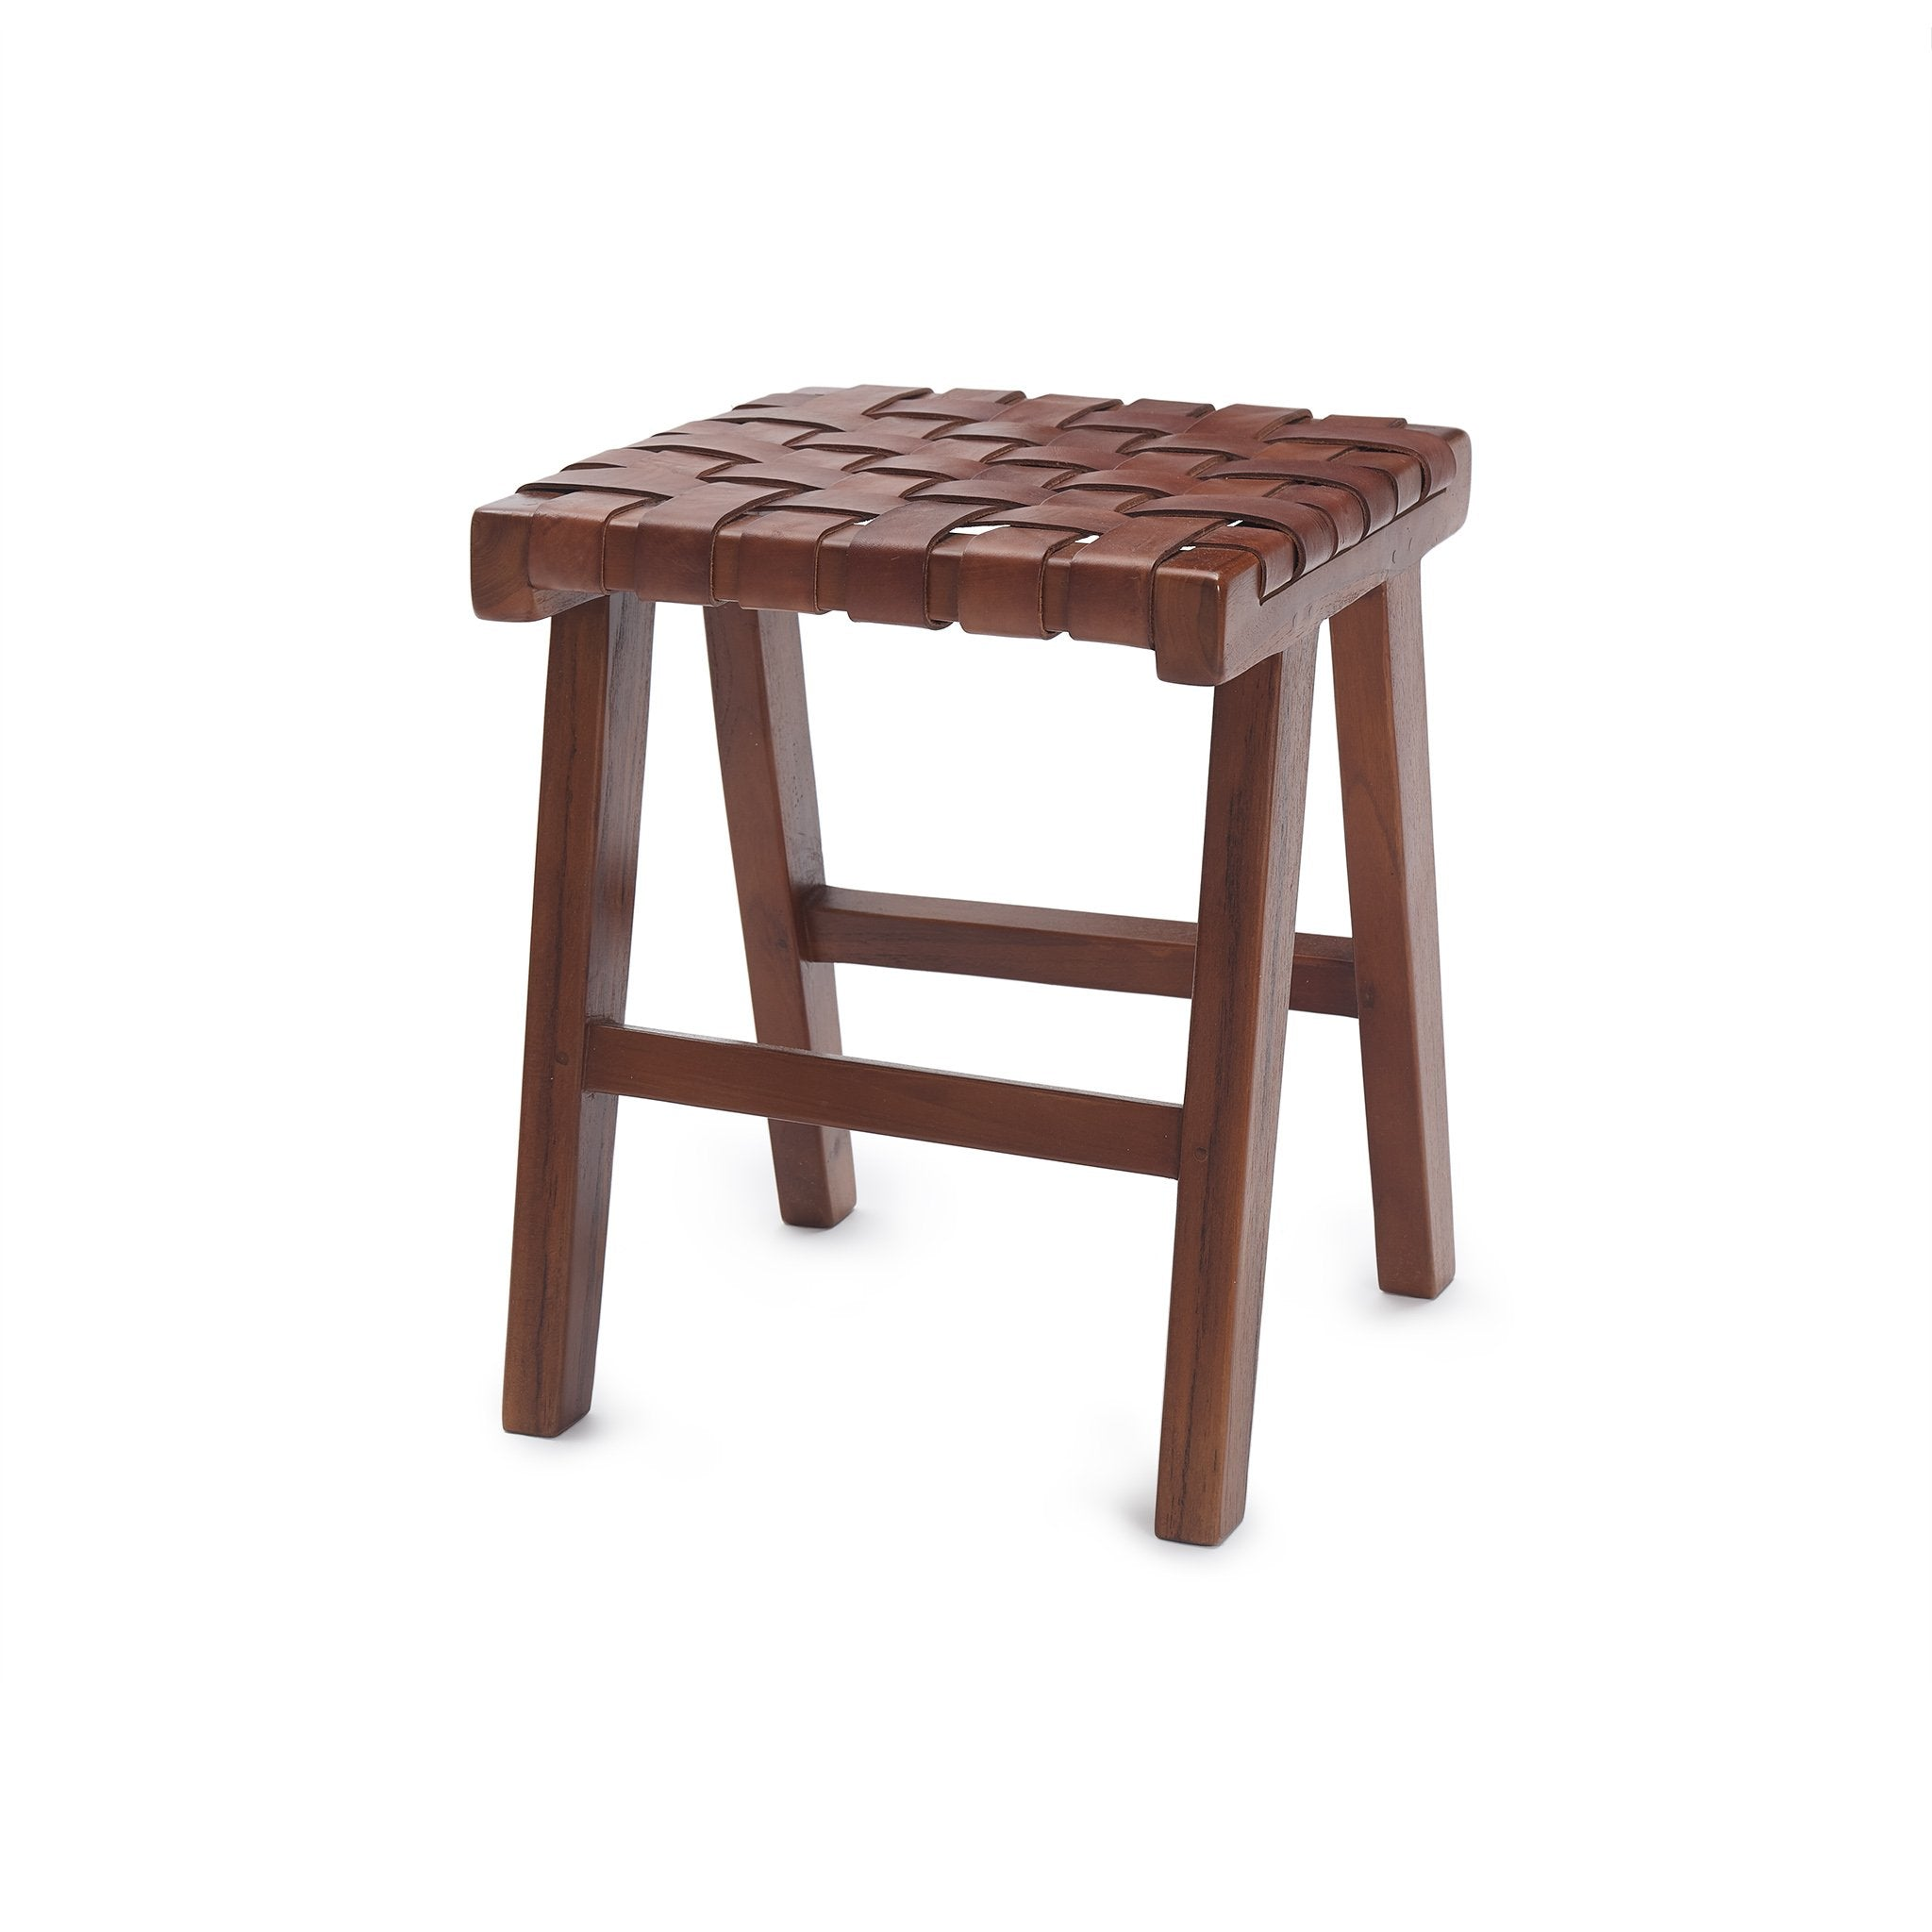 Kamaru Stool cognac, 100% leather & 100% teak wood